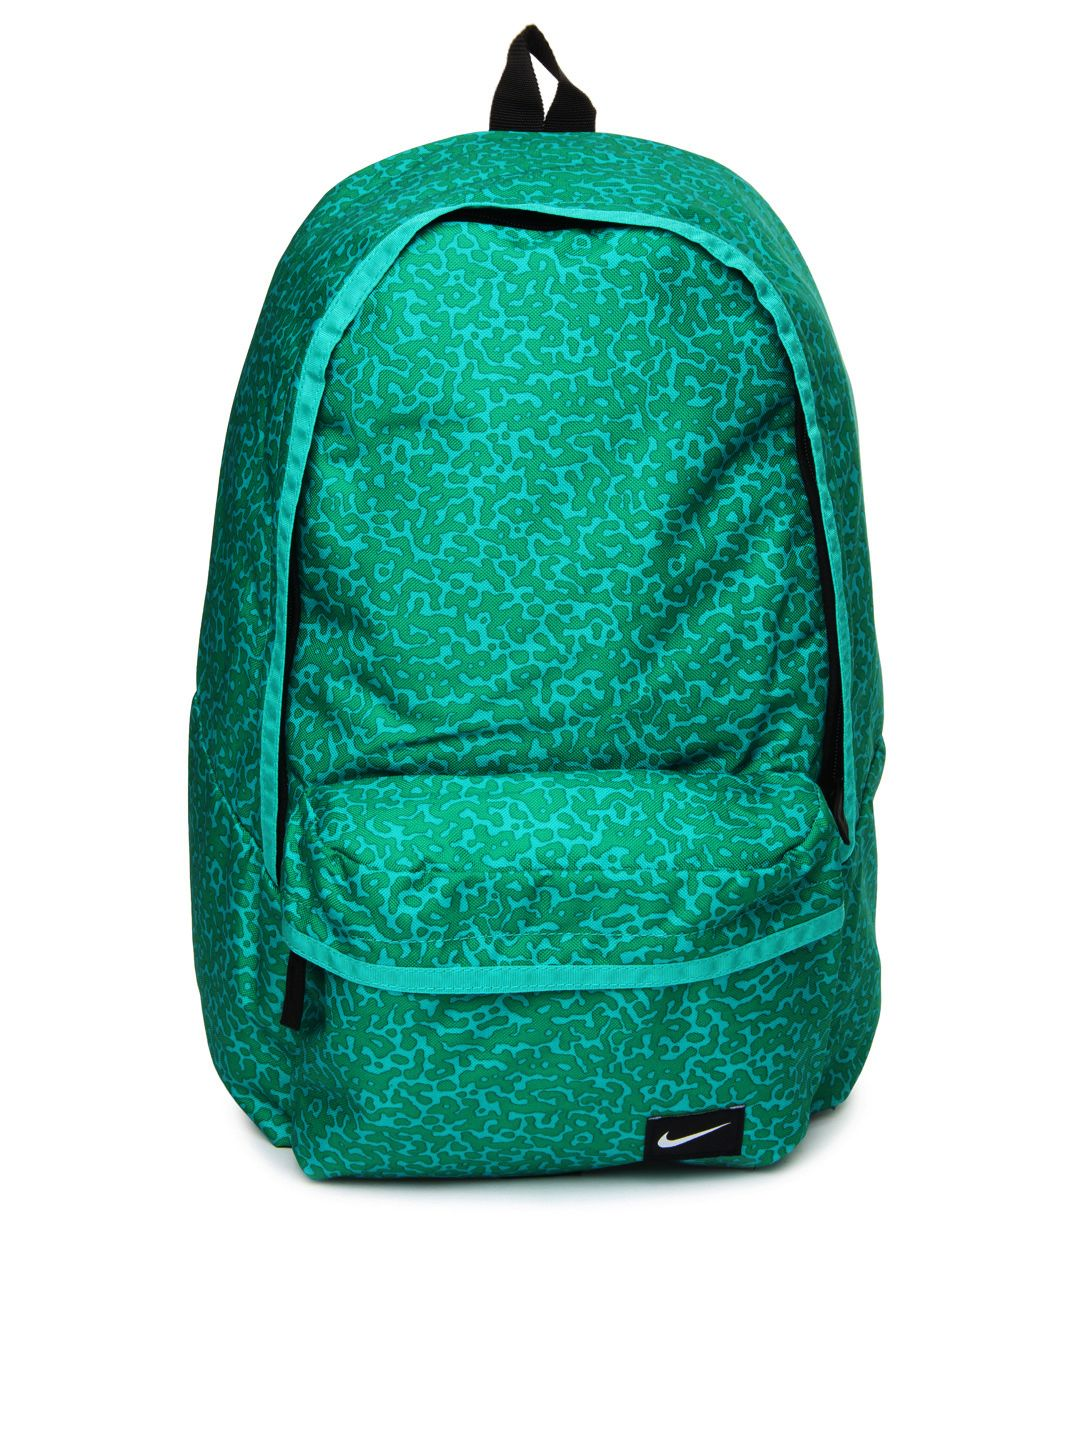 Buy Nike Women Green Printed Backpack - 597 - Accessories for Unisex from Nike at Rs. 1525